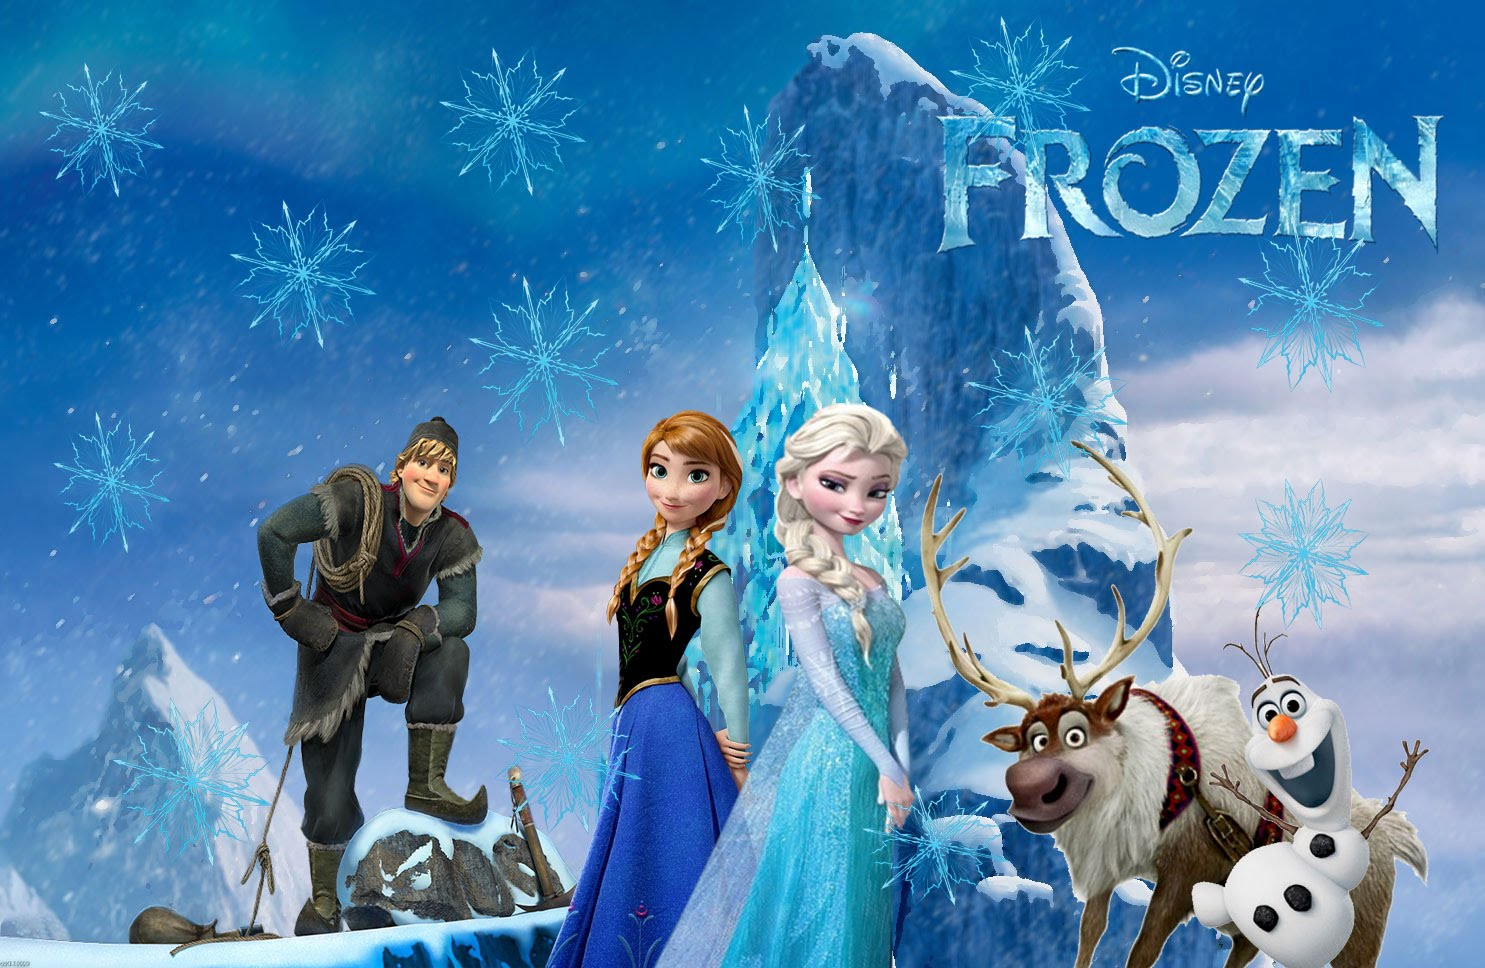 Frozen Review